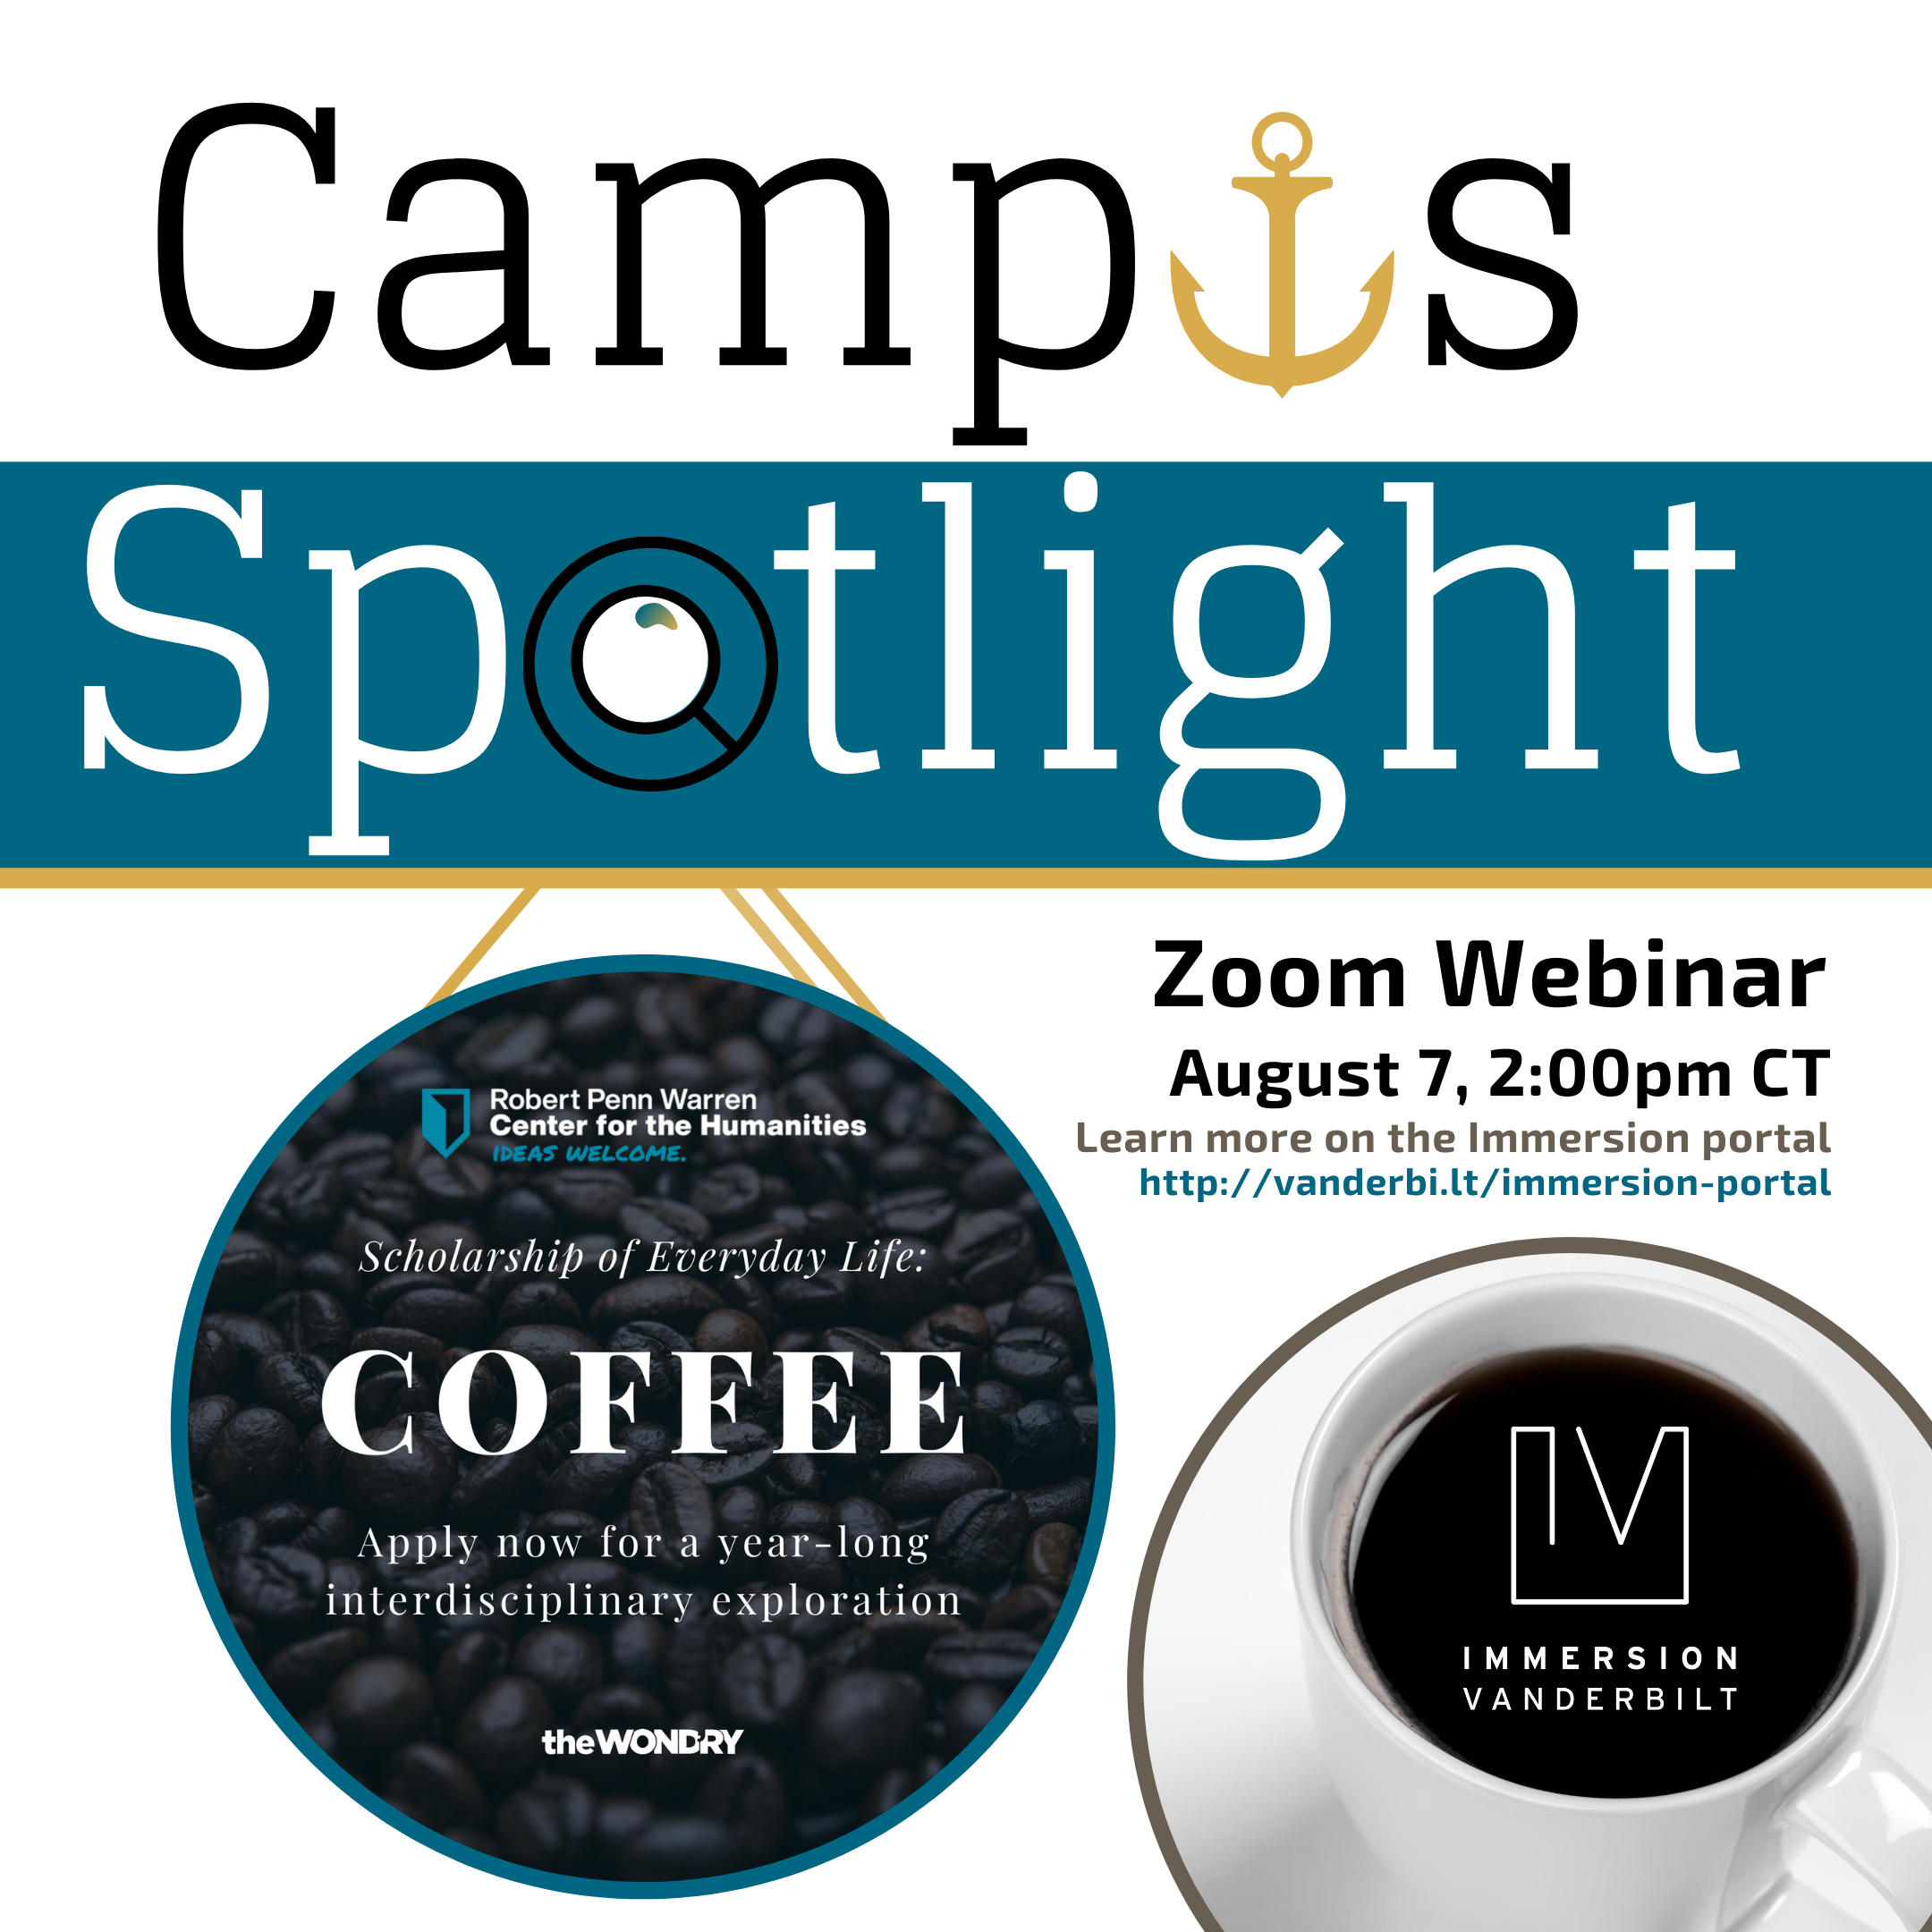 Graphic advertising a Zoom webinar with the Coffee Equity Lab, depicting a magnifying glass spotlighting an ad to apply